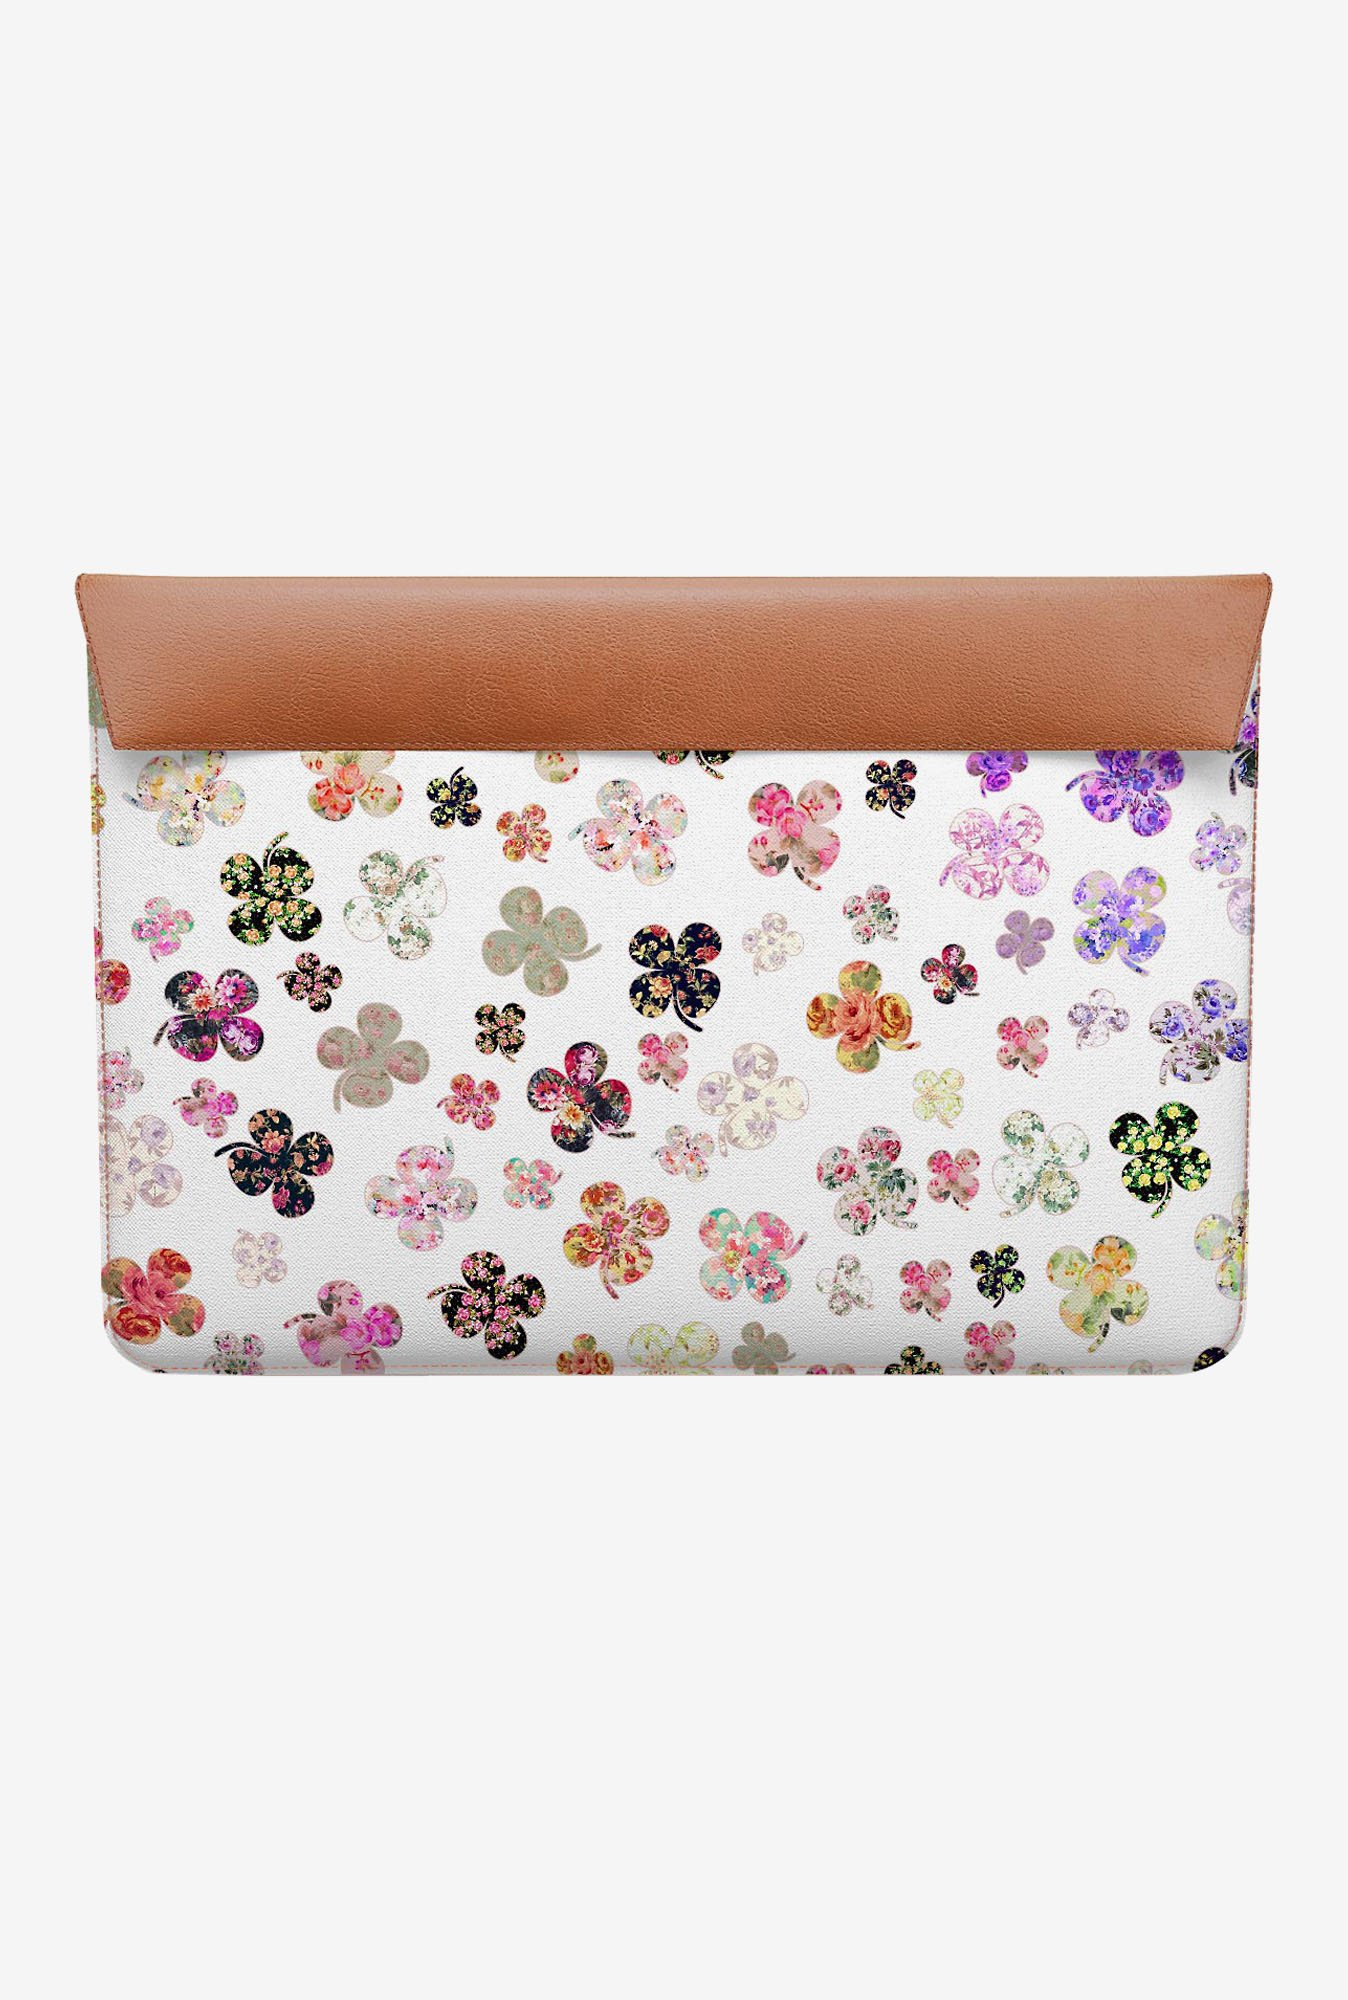 DailyObjects Floral Clovers MacBook Air 11 Envelope Sleeve